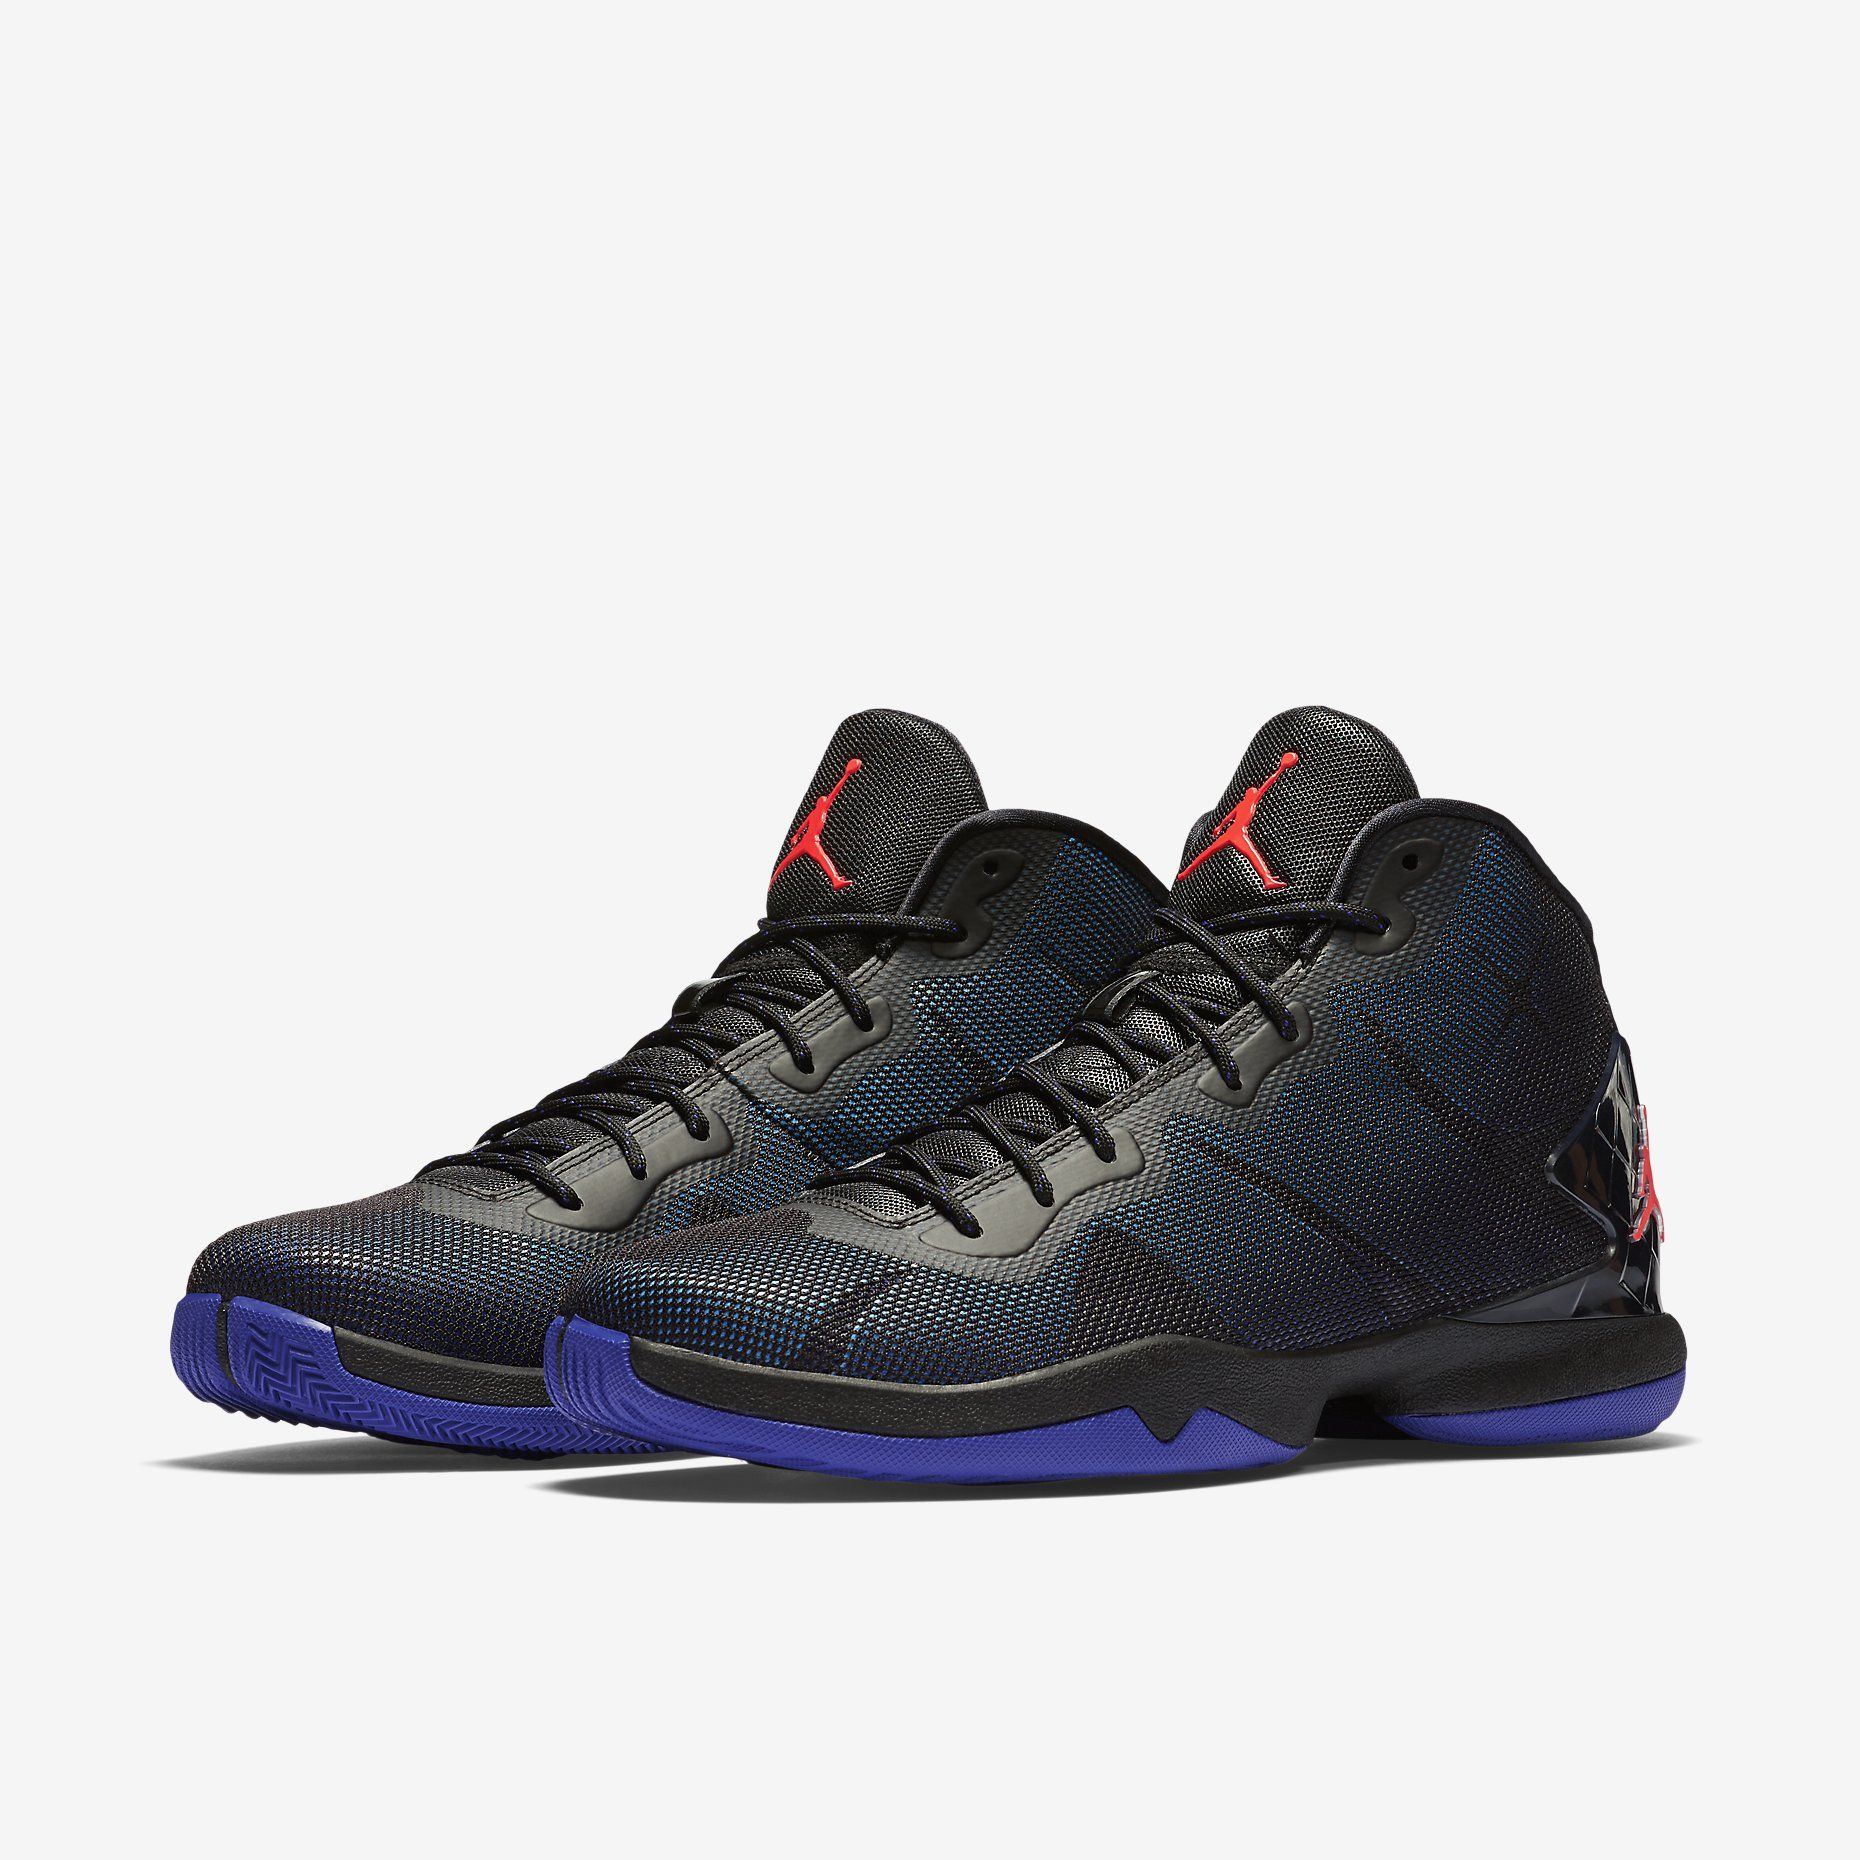 buy popular 3eecd be474 Chaussures Jordan Super.Fly 4 Noir Bleu 139.80€ sur www.basketstore.